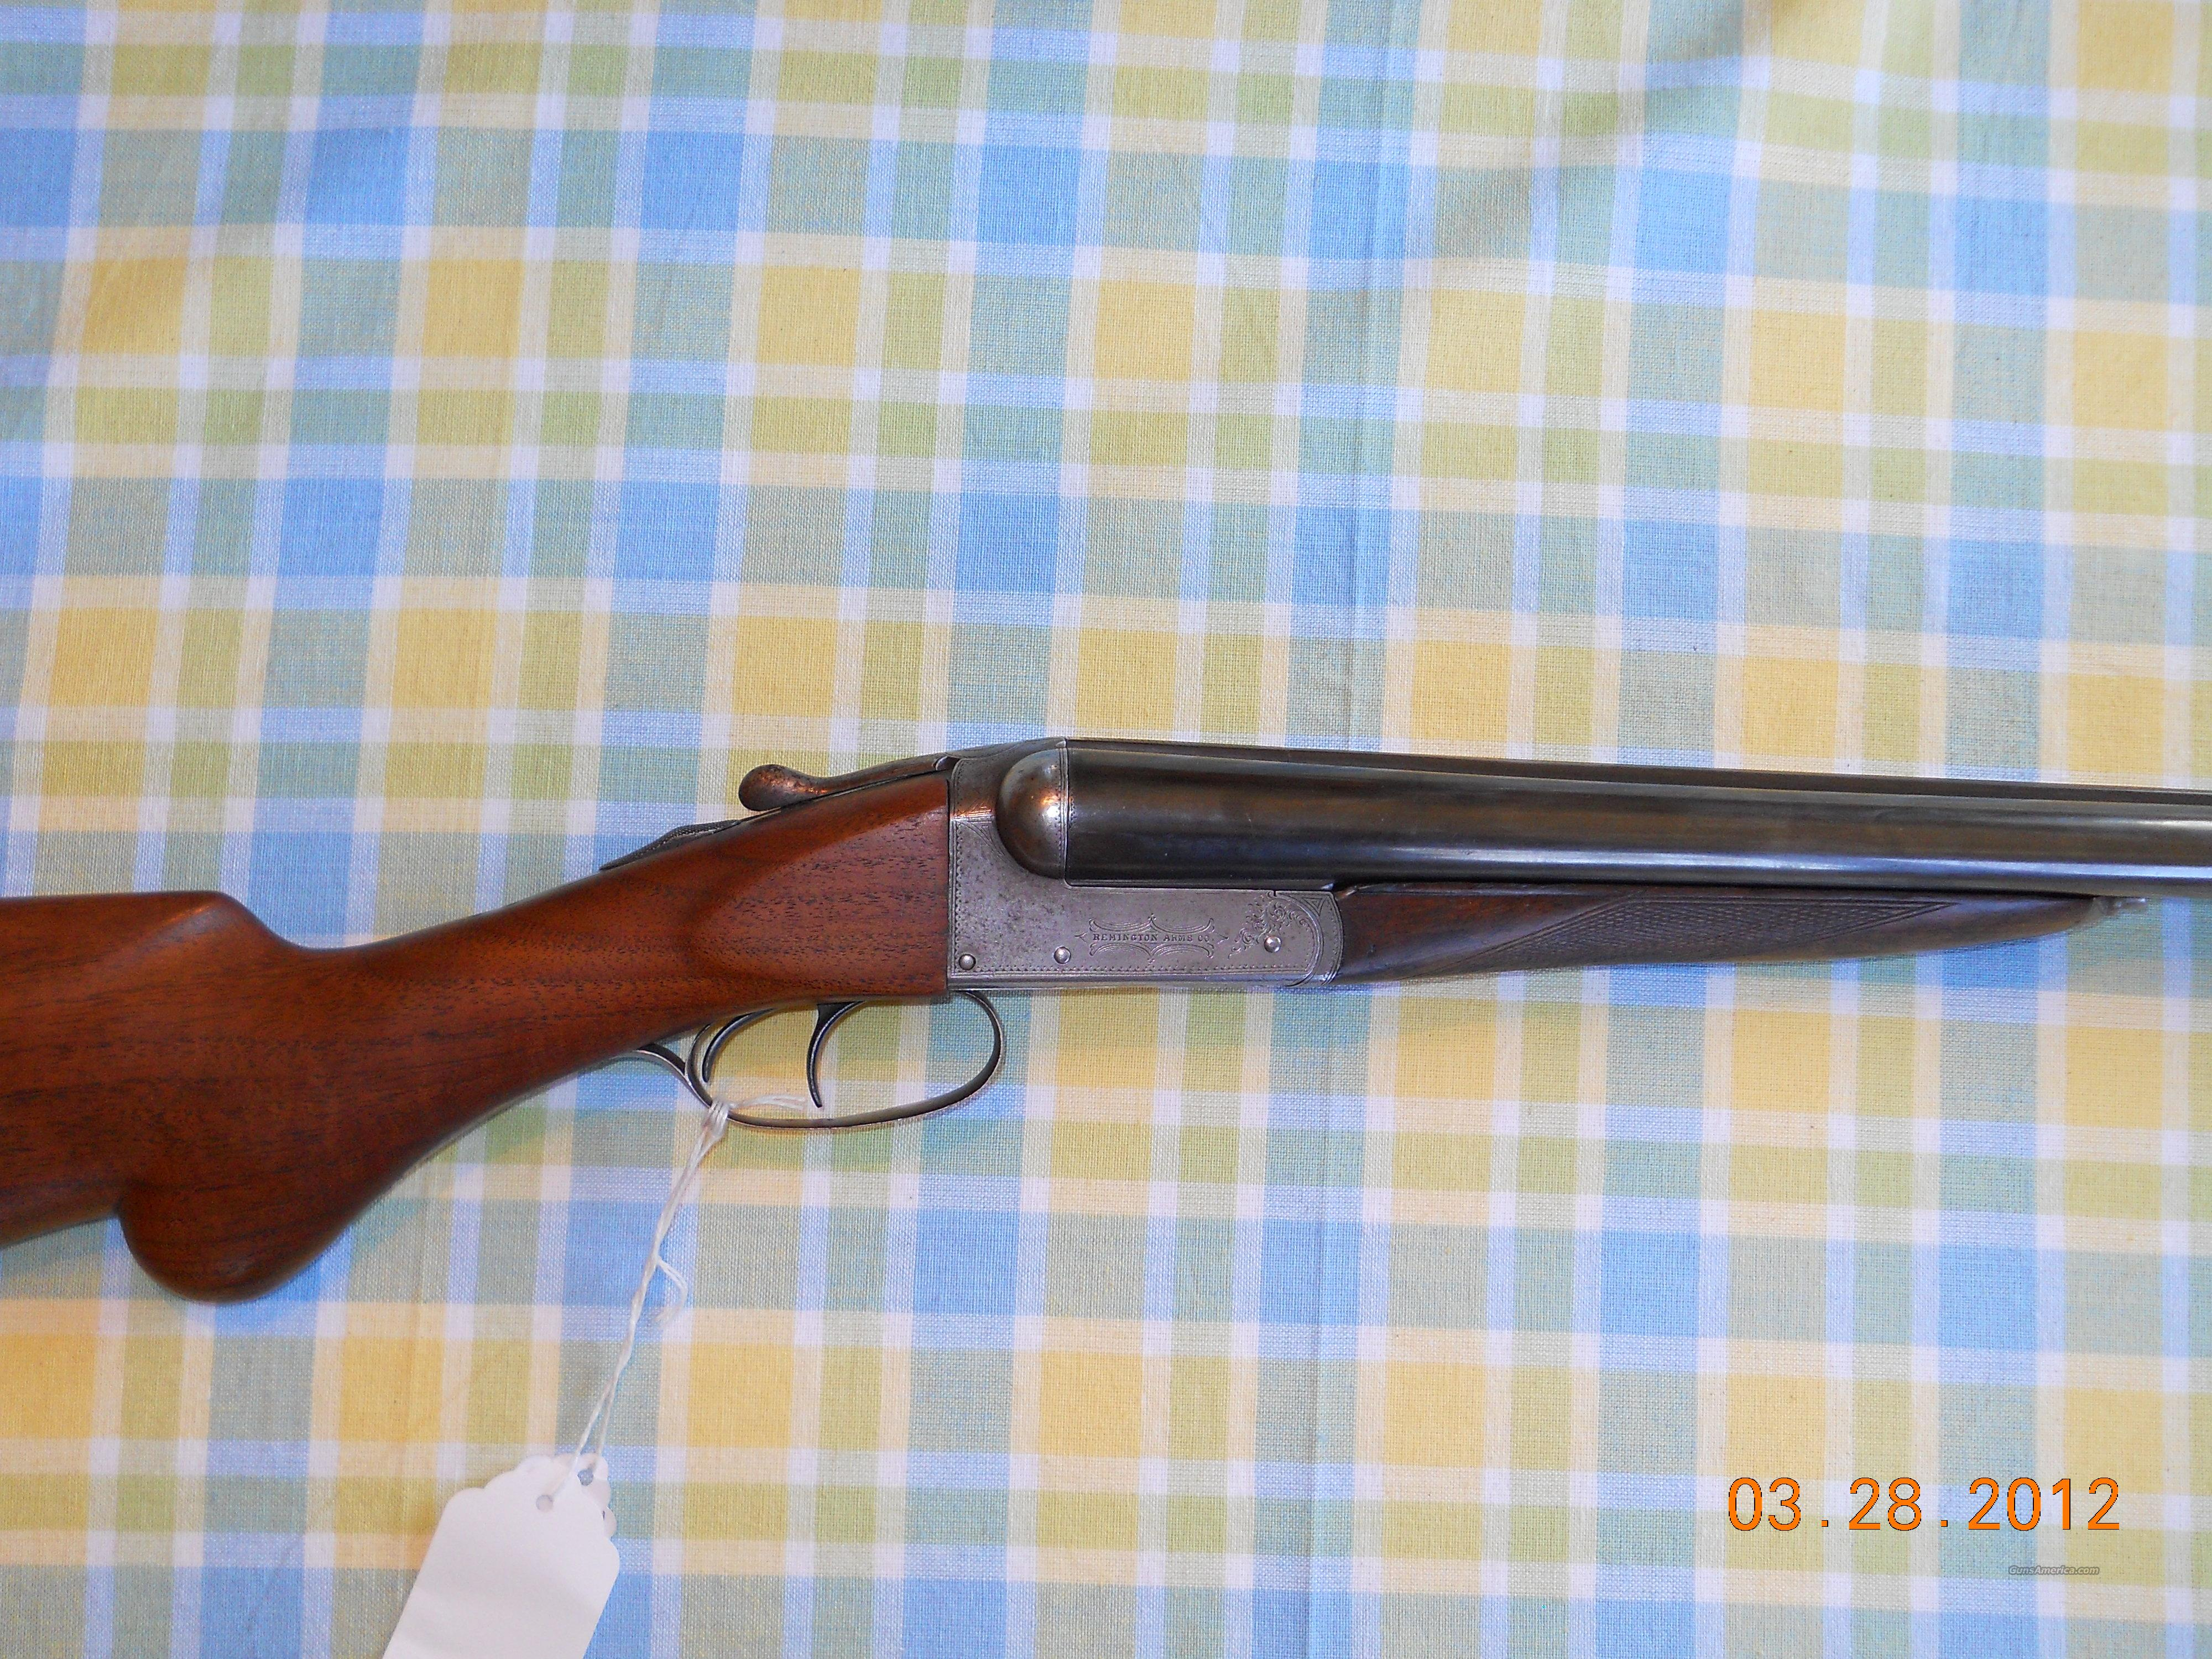 RARE!! REMINGTON 1894 SXS HAMMERLESS .12 GA. SHOTGUN - RARE!!  Guns > Shotguns > Remington Shotguns  > Side x Side Pre-1899